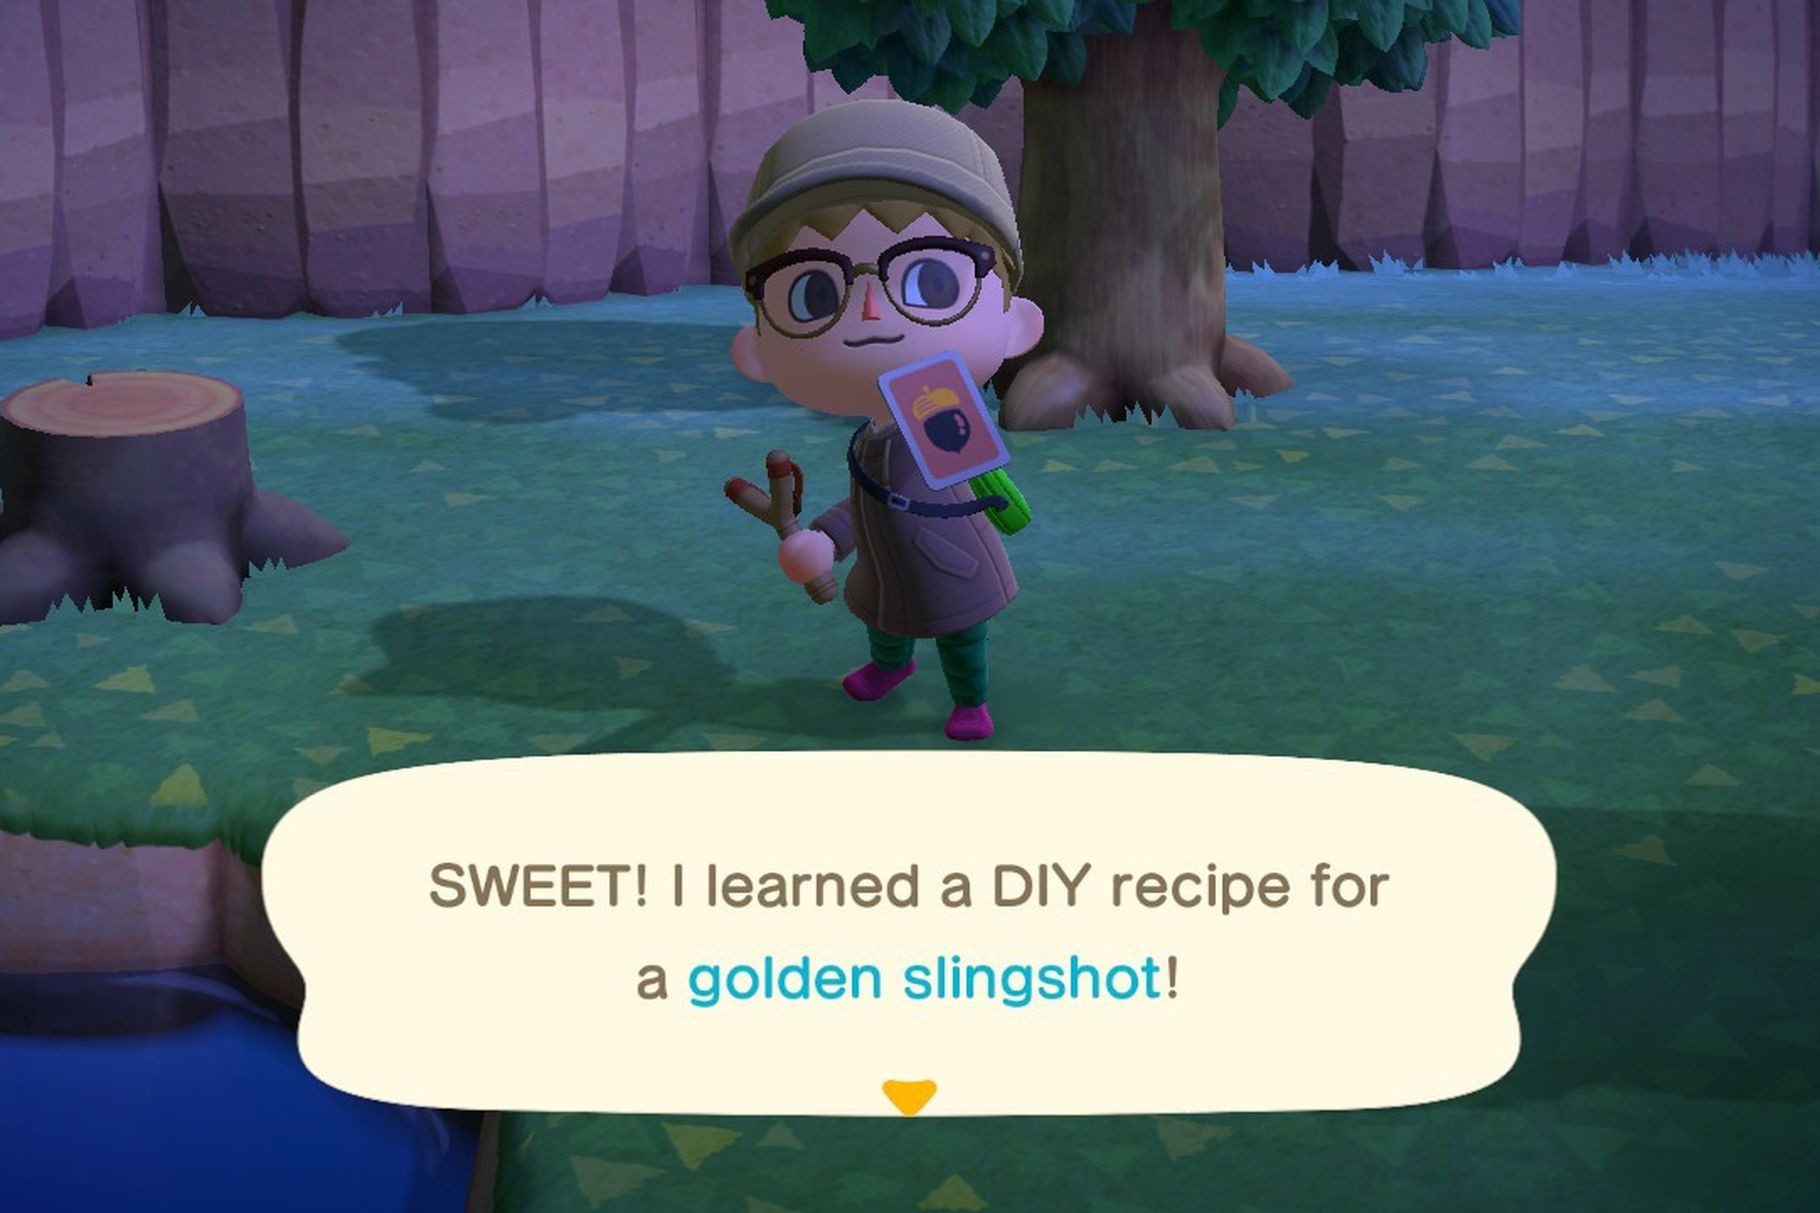 f222cacfc46e539b780c187808627b15 - How To Get Golden Tools In Animal Crossing New Leaf